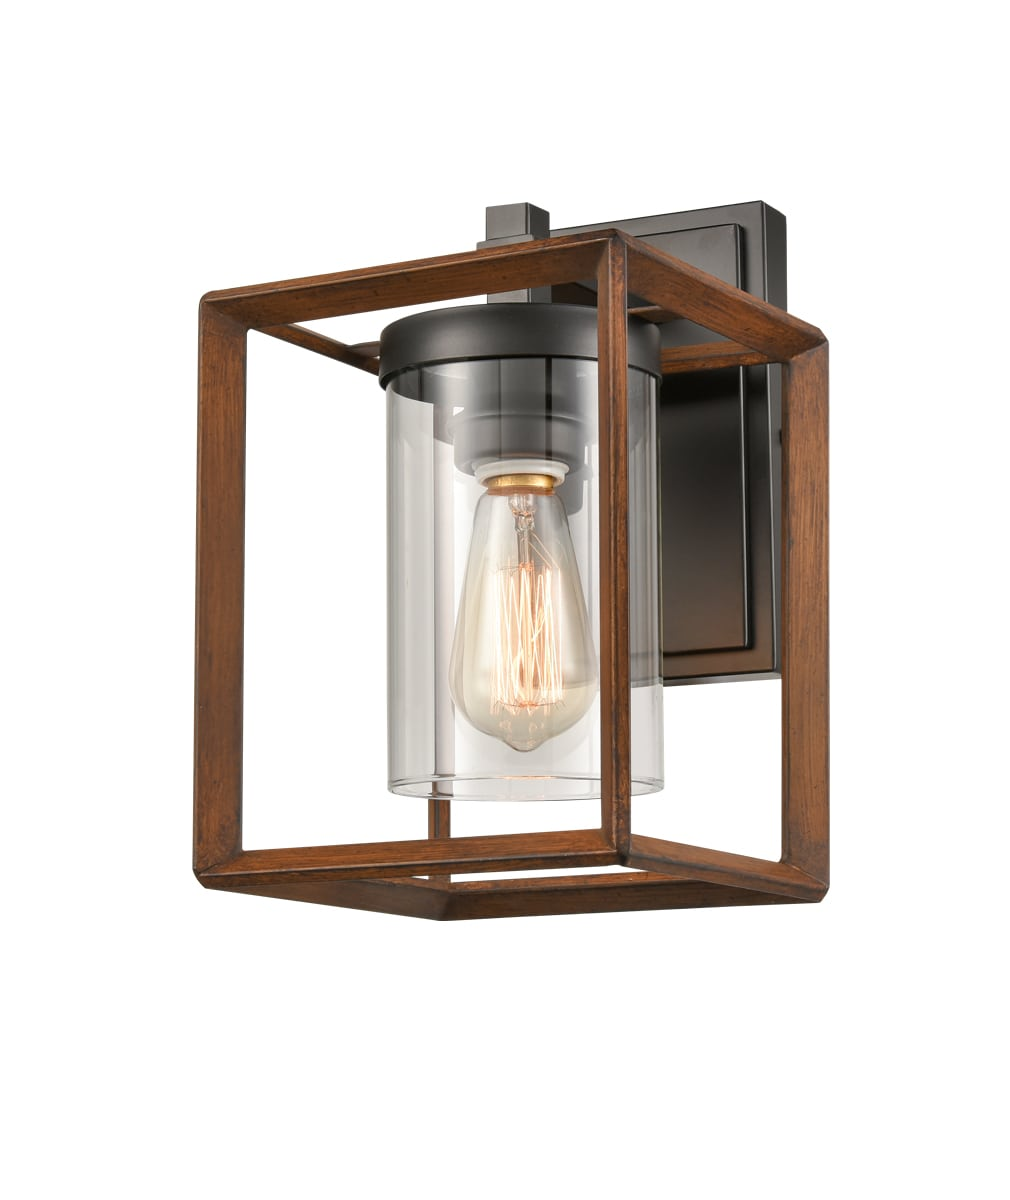 Lantern Cage Wall Sconce with Clear Glass Shade